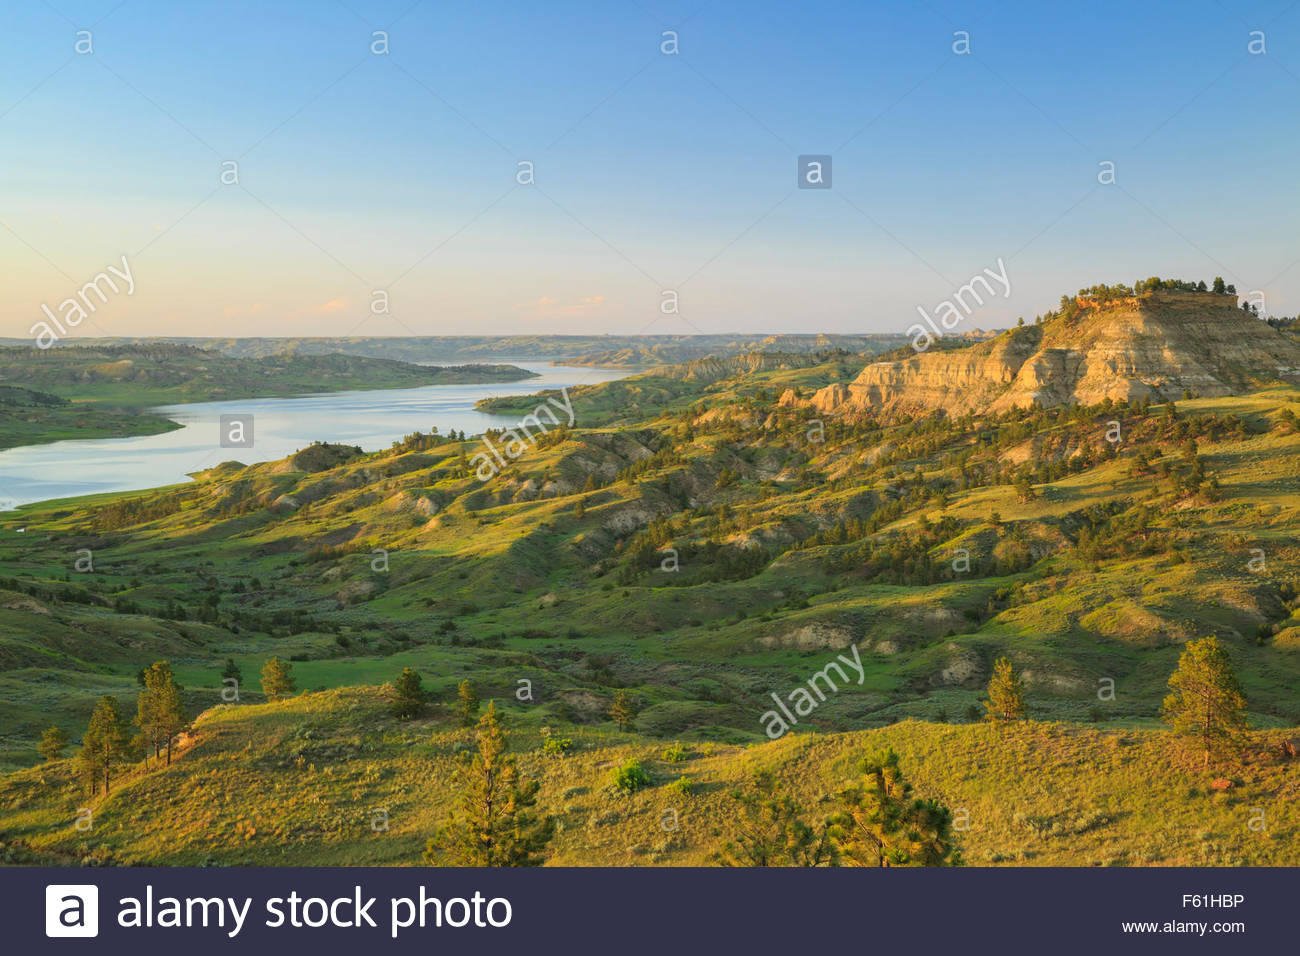 Custer National Forest, Sioux Ranger District Billings, Little Big Horn, and the Montana Plains, Charles Russell Stock Photos & Charles Russell Stock Images - Alamy